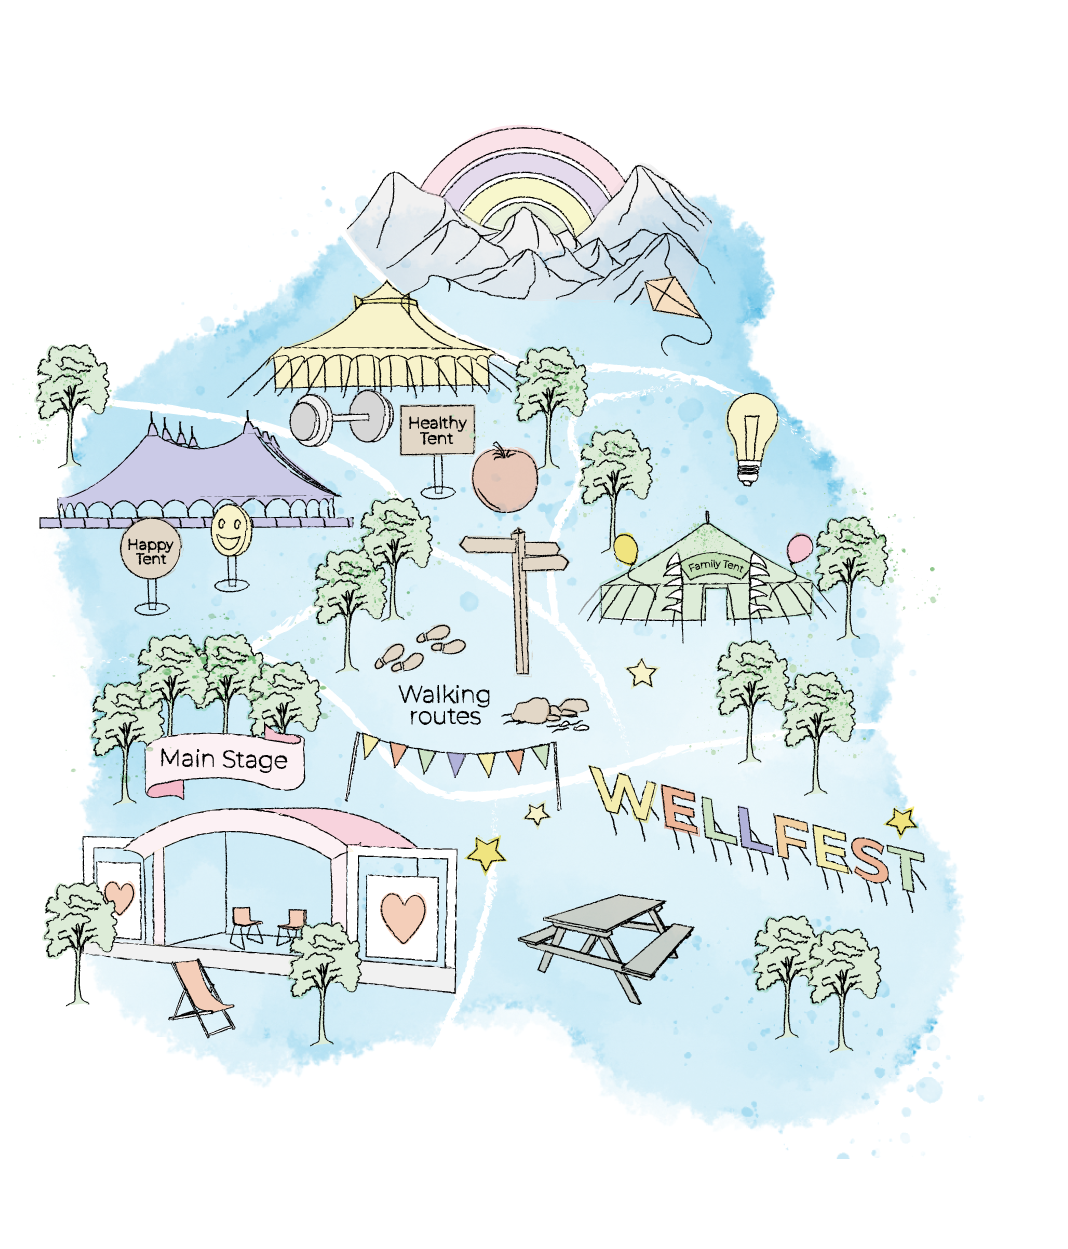 Wellfest 2020 Map